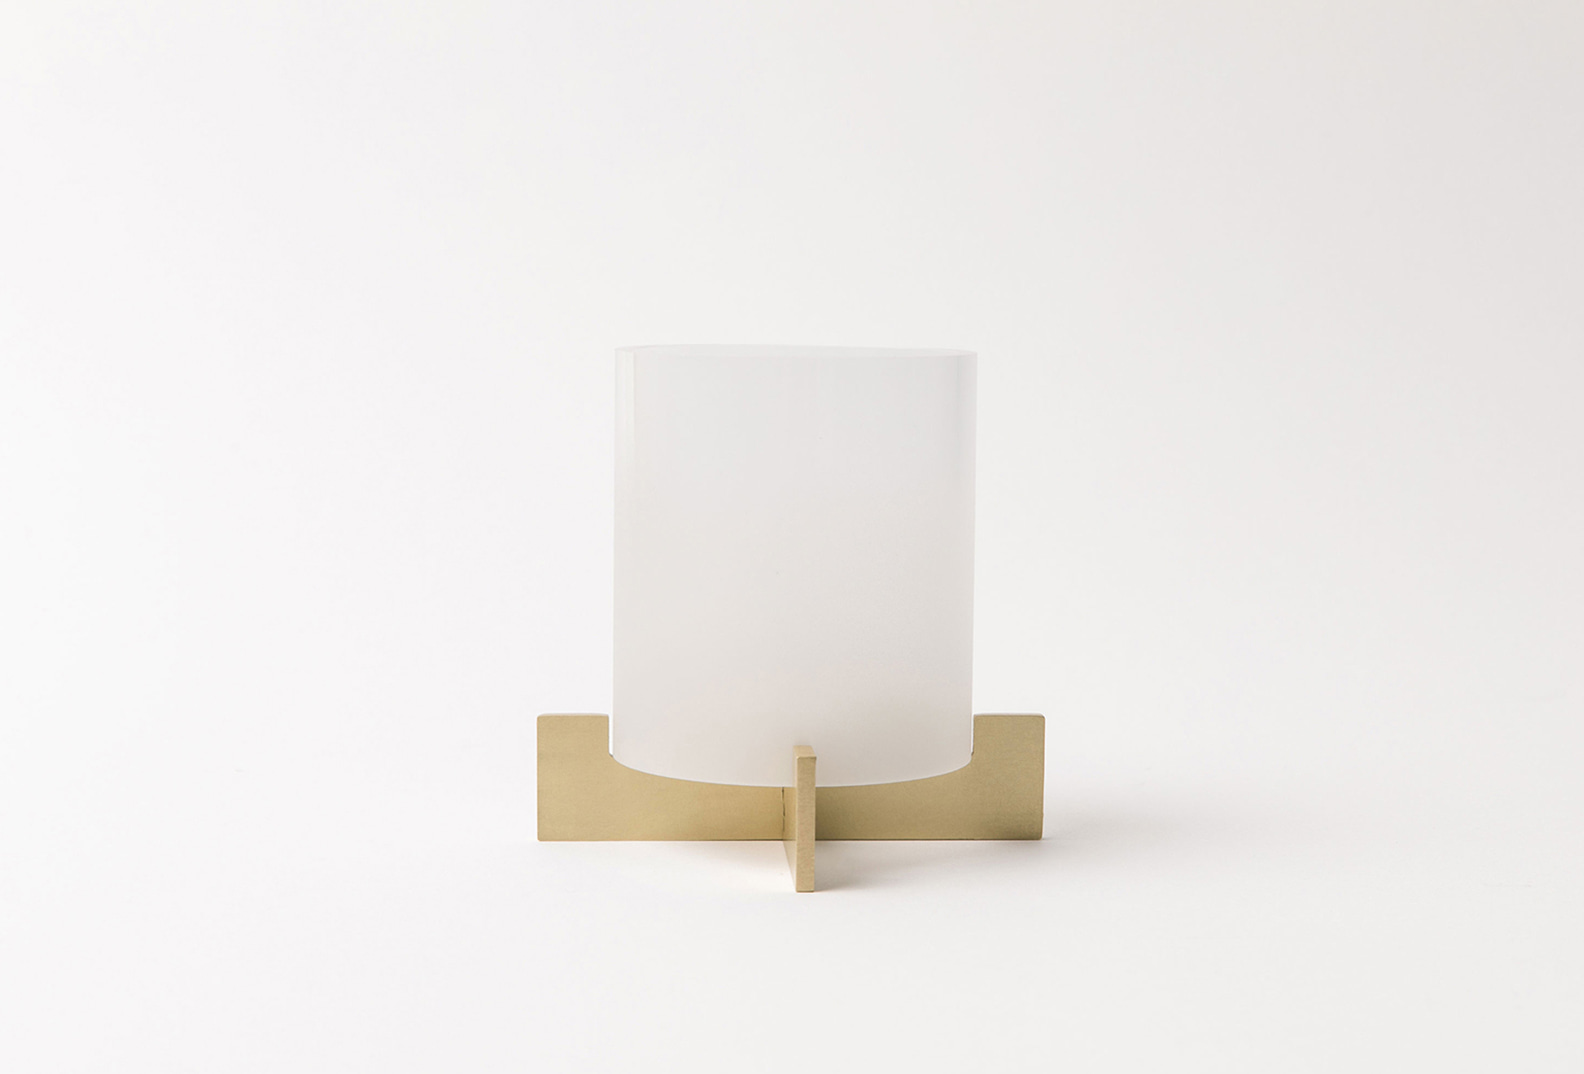 Brasslic-Candle Holder